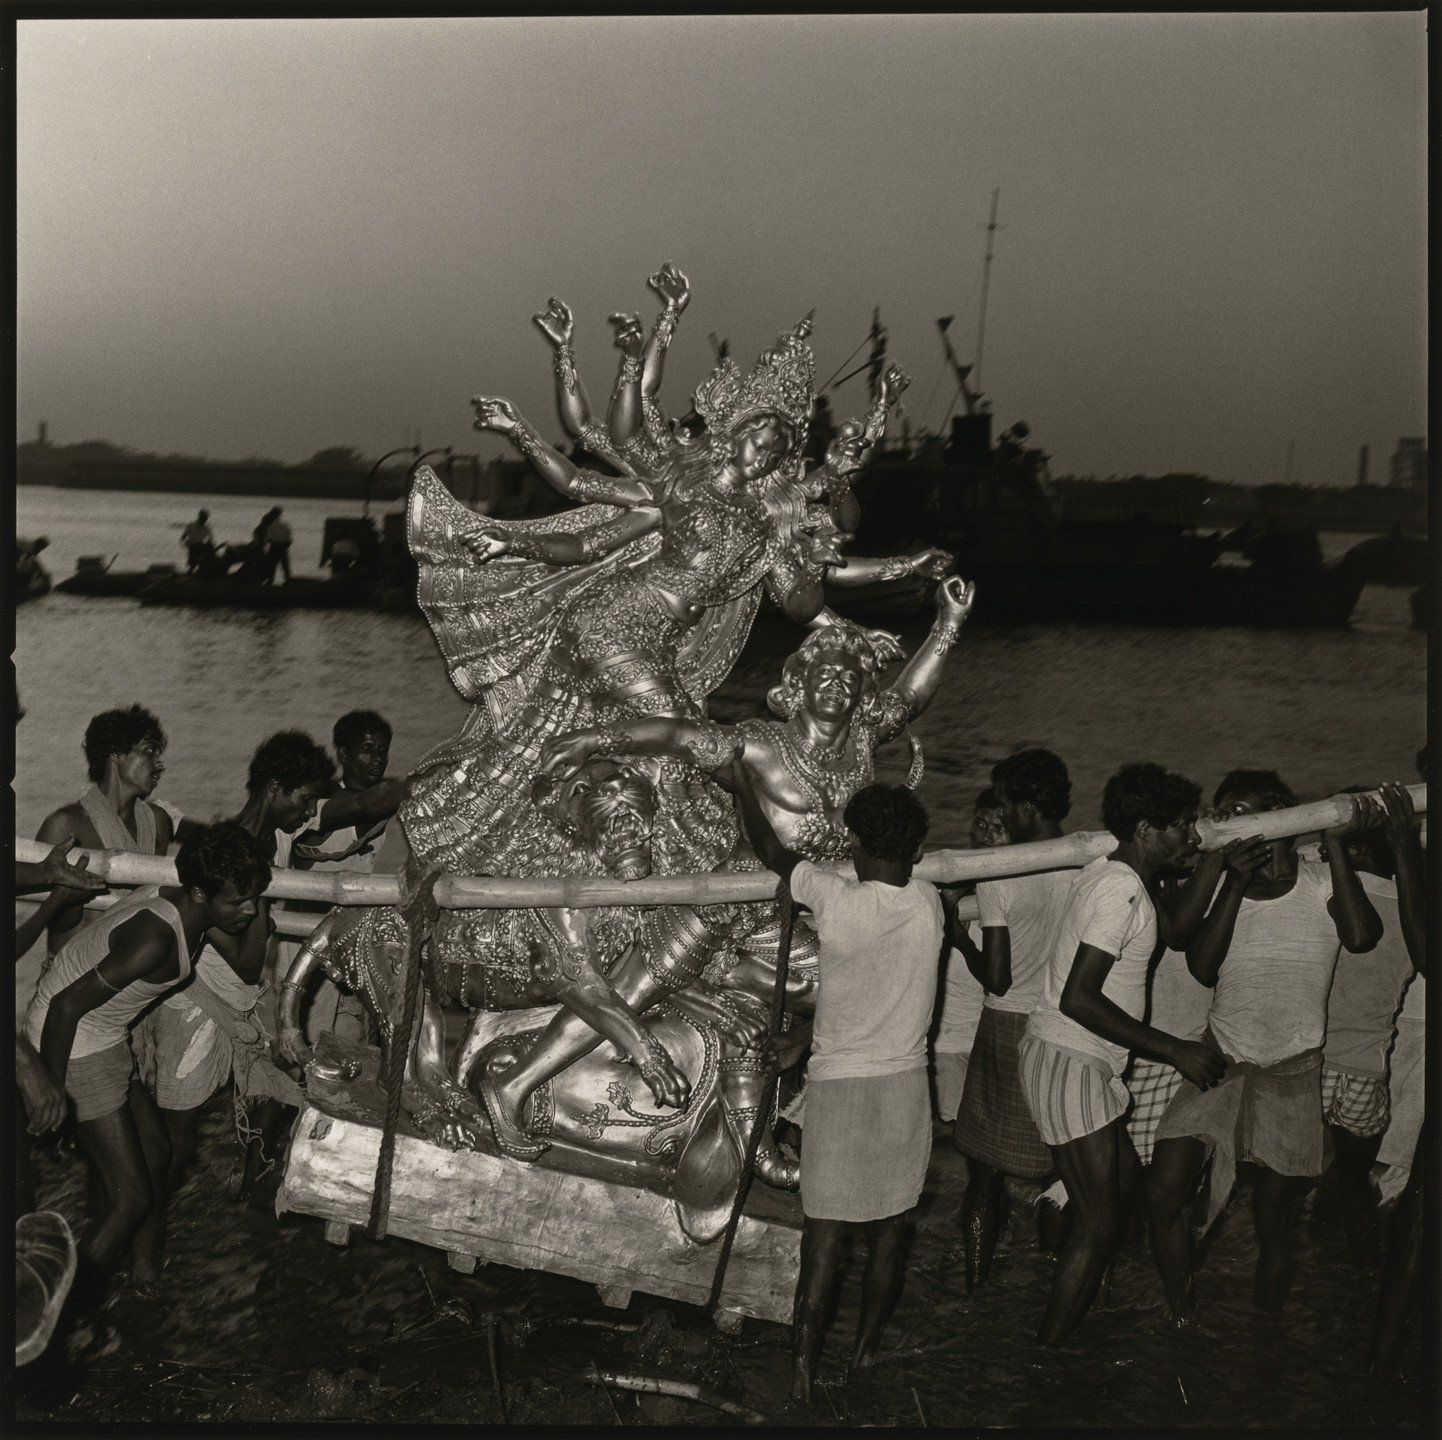 Rosalind Fox Solomon. Immersion of Goddess Durga, Calcutta, India. 1982